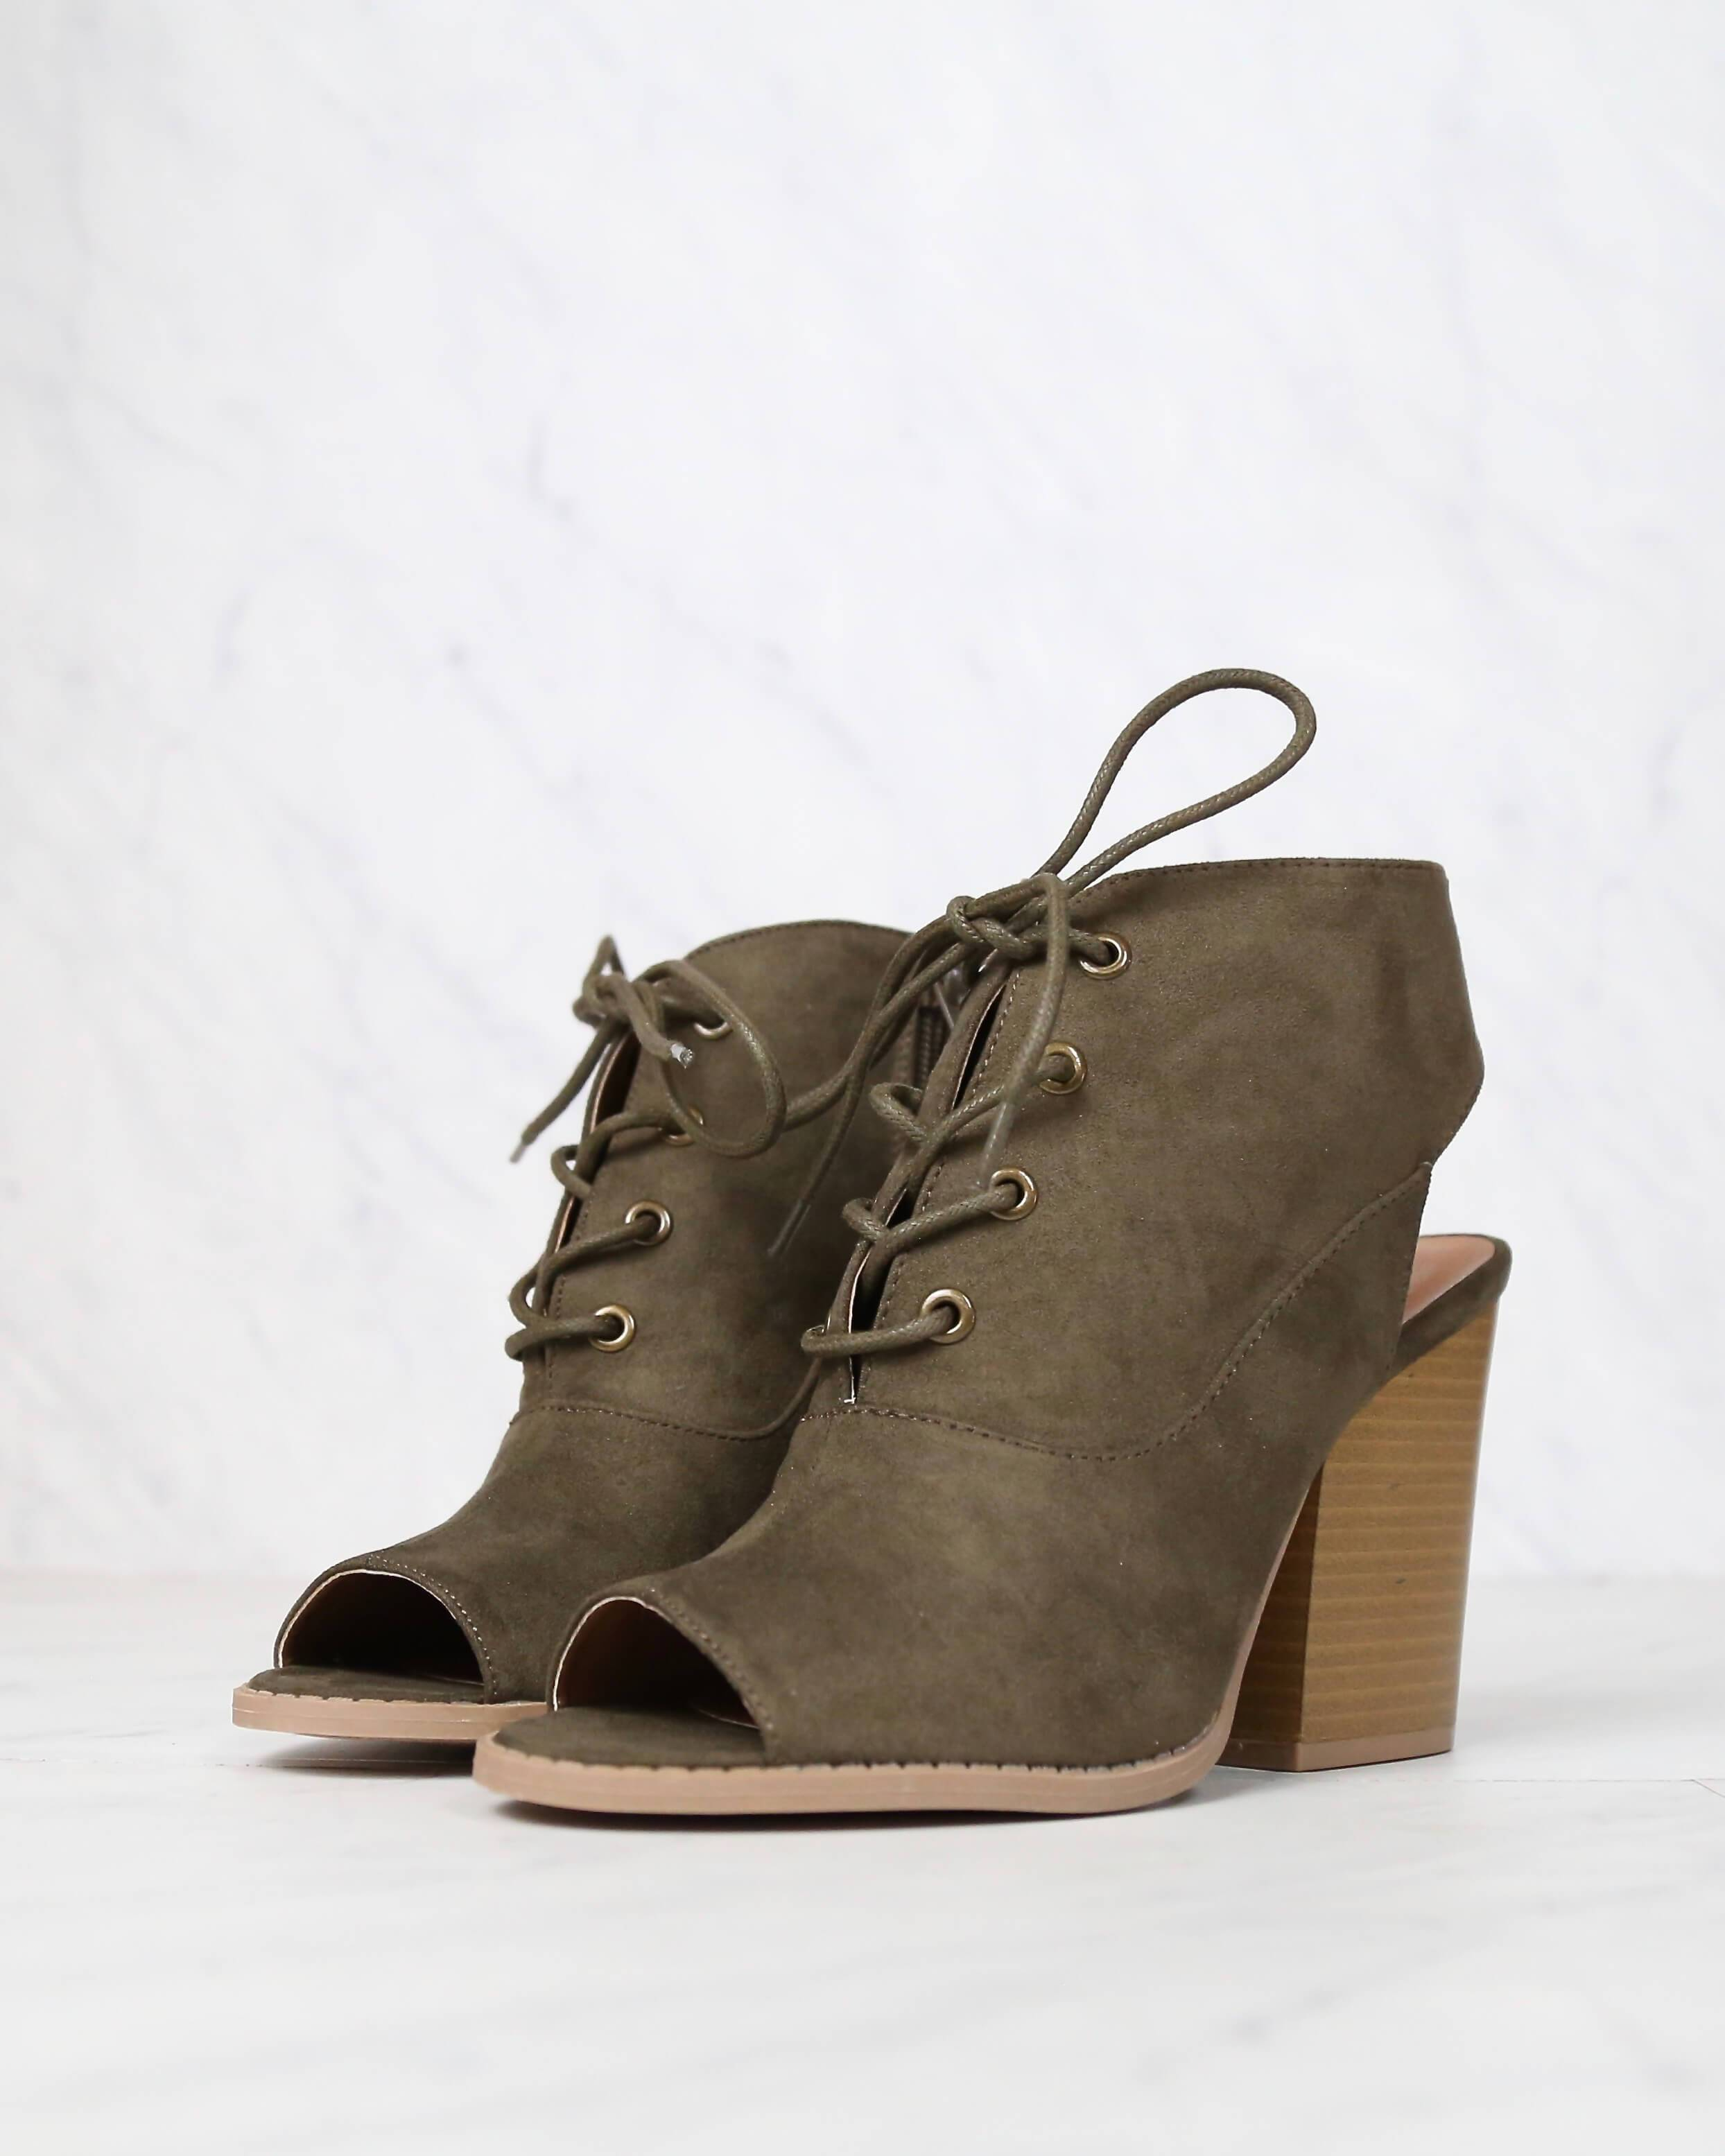 Image of Final Sale - Adventure Lace Up Peep Toe Suede Booties in Khaki